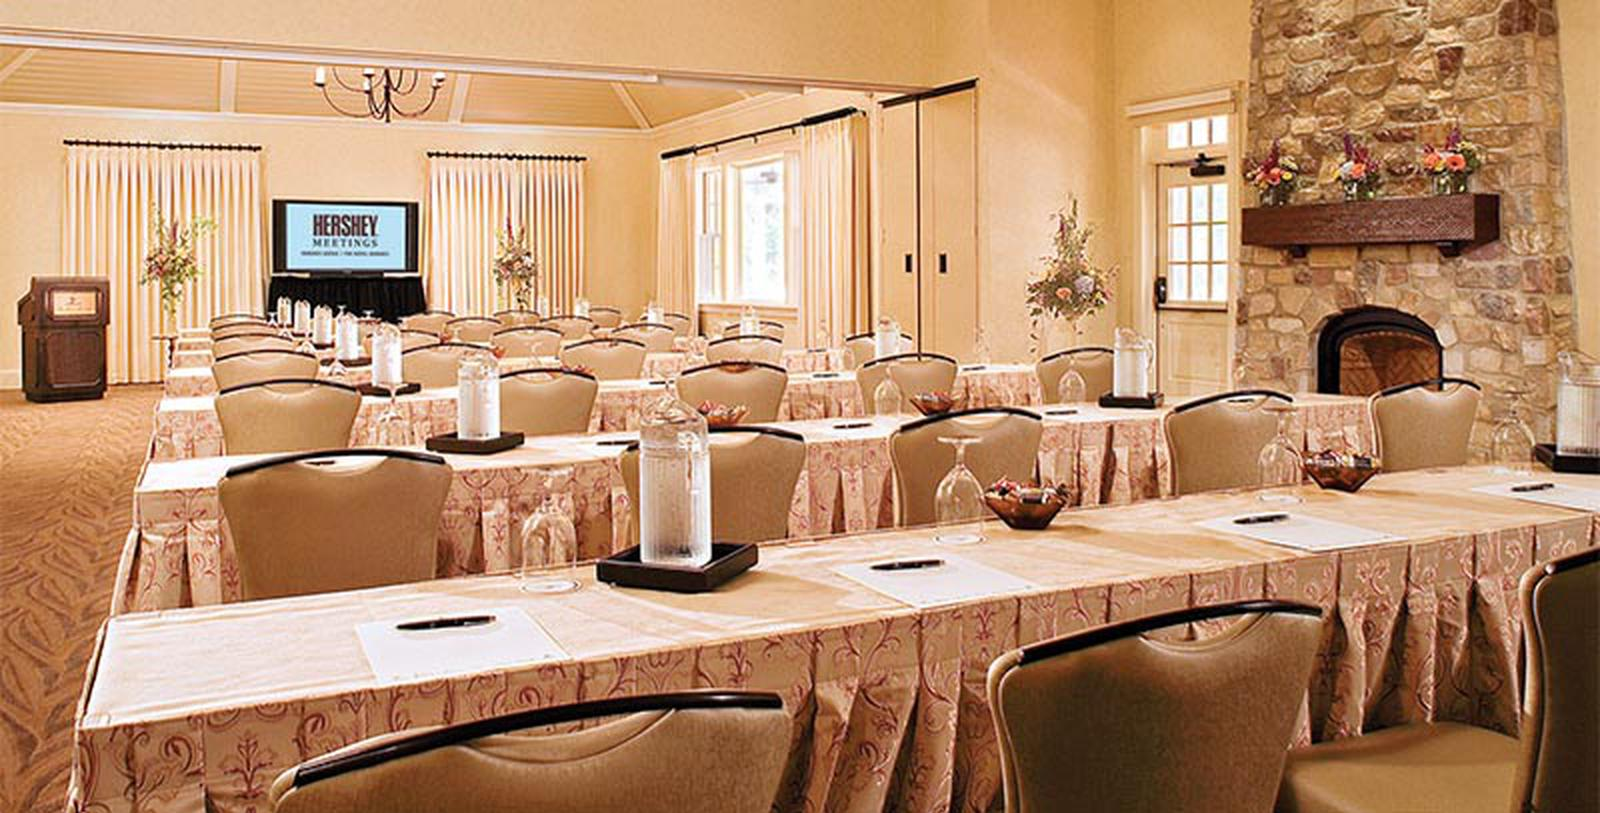 Image of Meeting Room The Hotel Hershey®, 1933, Member of Historic Hotels of America, in Hershey, Pennsylvania, Experience